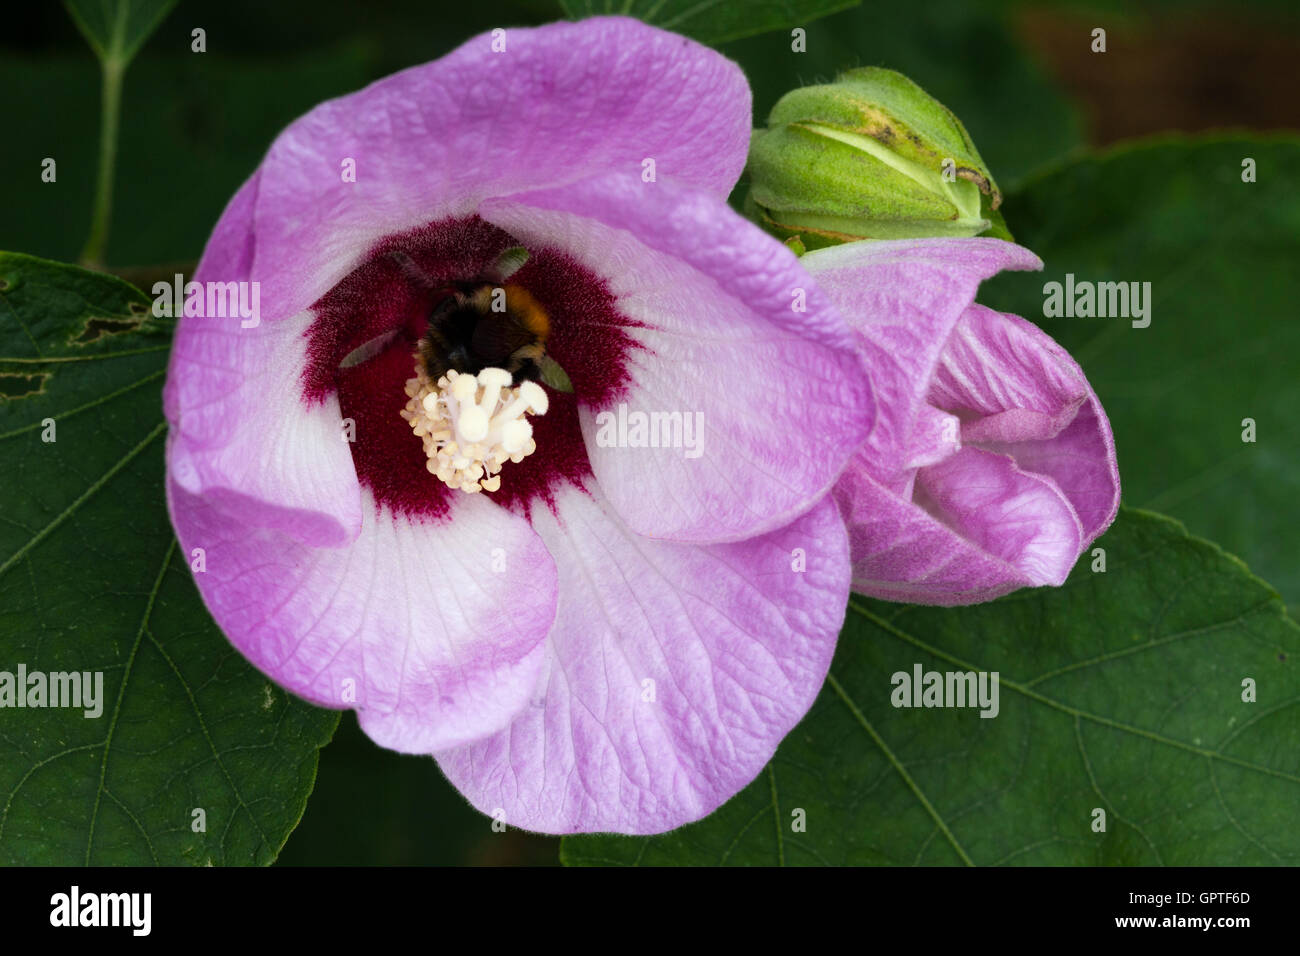 Dark throat and white stamens in the centre of the late flowering shrub, Hibiscus sinosyriacus 'Lilac Queen'. - Stock Image